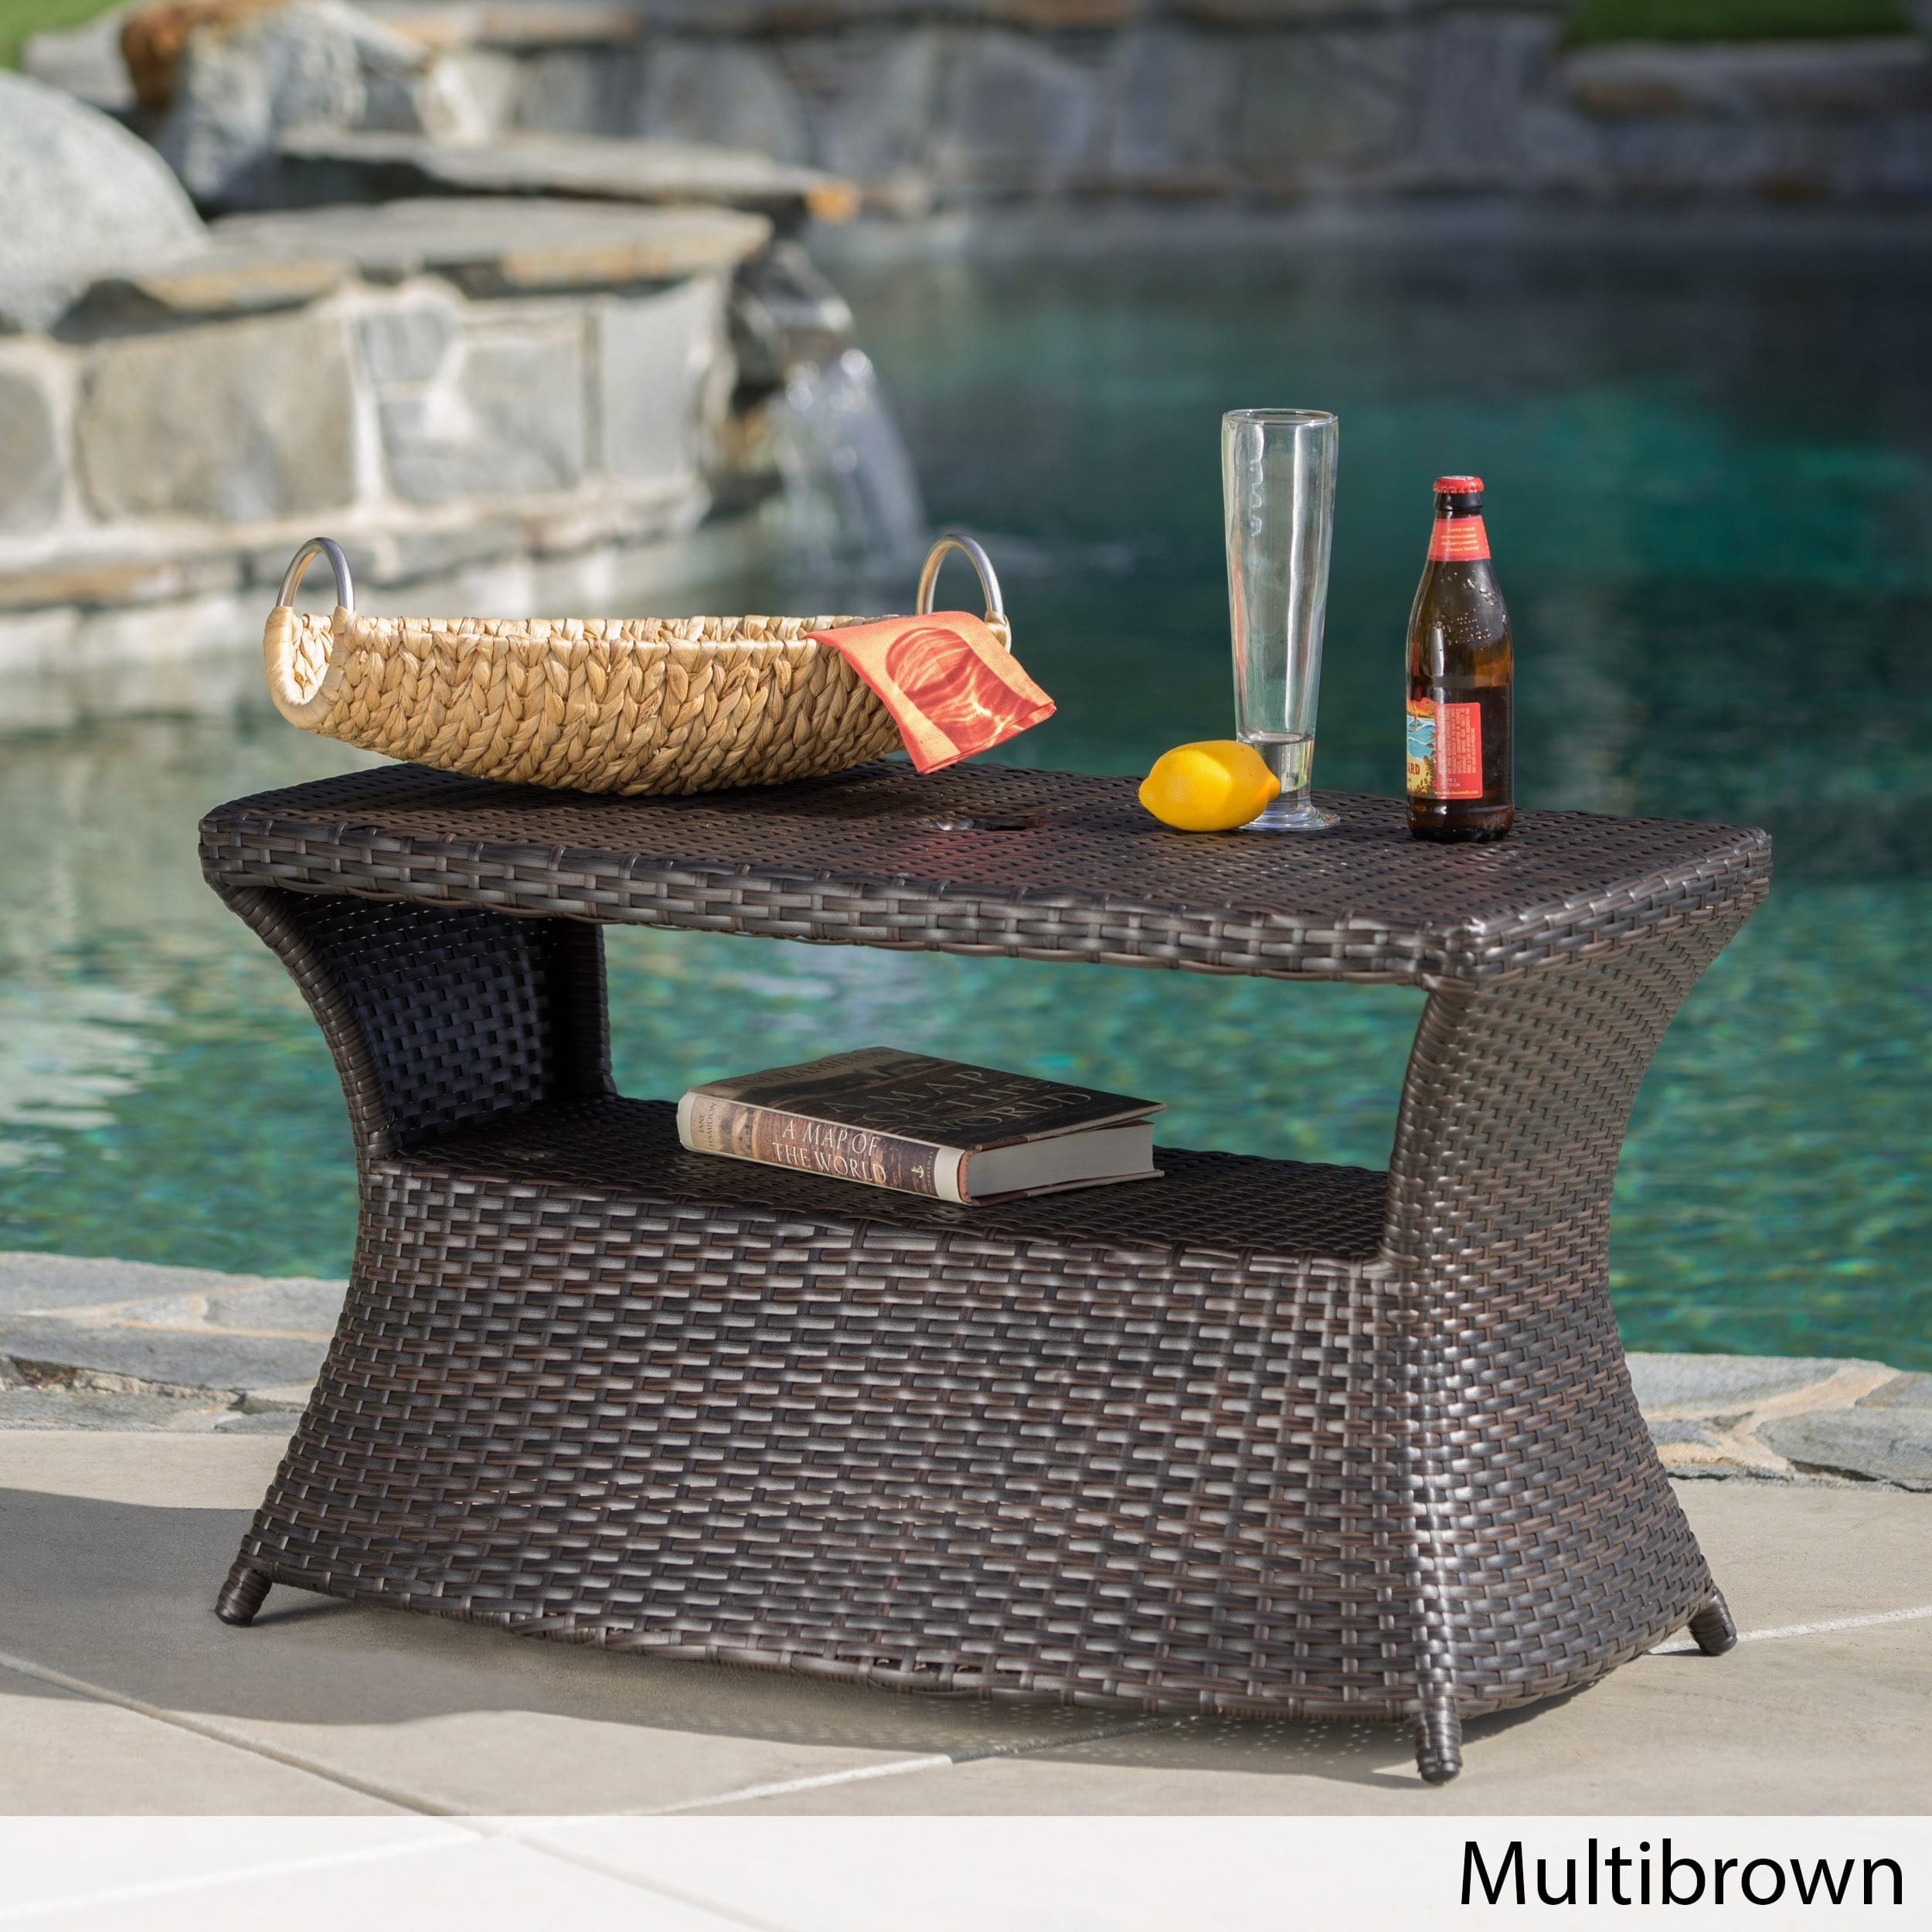 berkeley outdoor wicker side table with umbrella hole christopher knight home free shipping today industrial metal bedside carsons furniture dorm accessories circular cotton